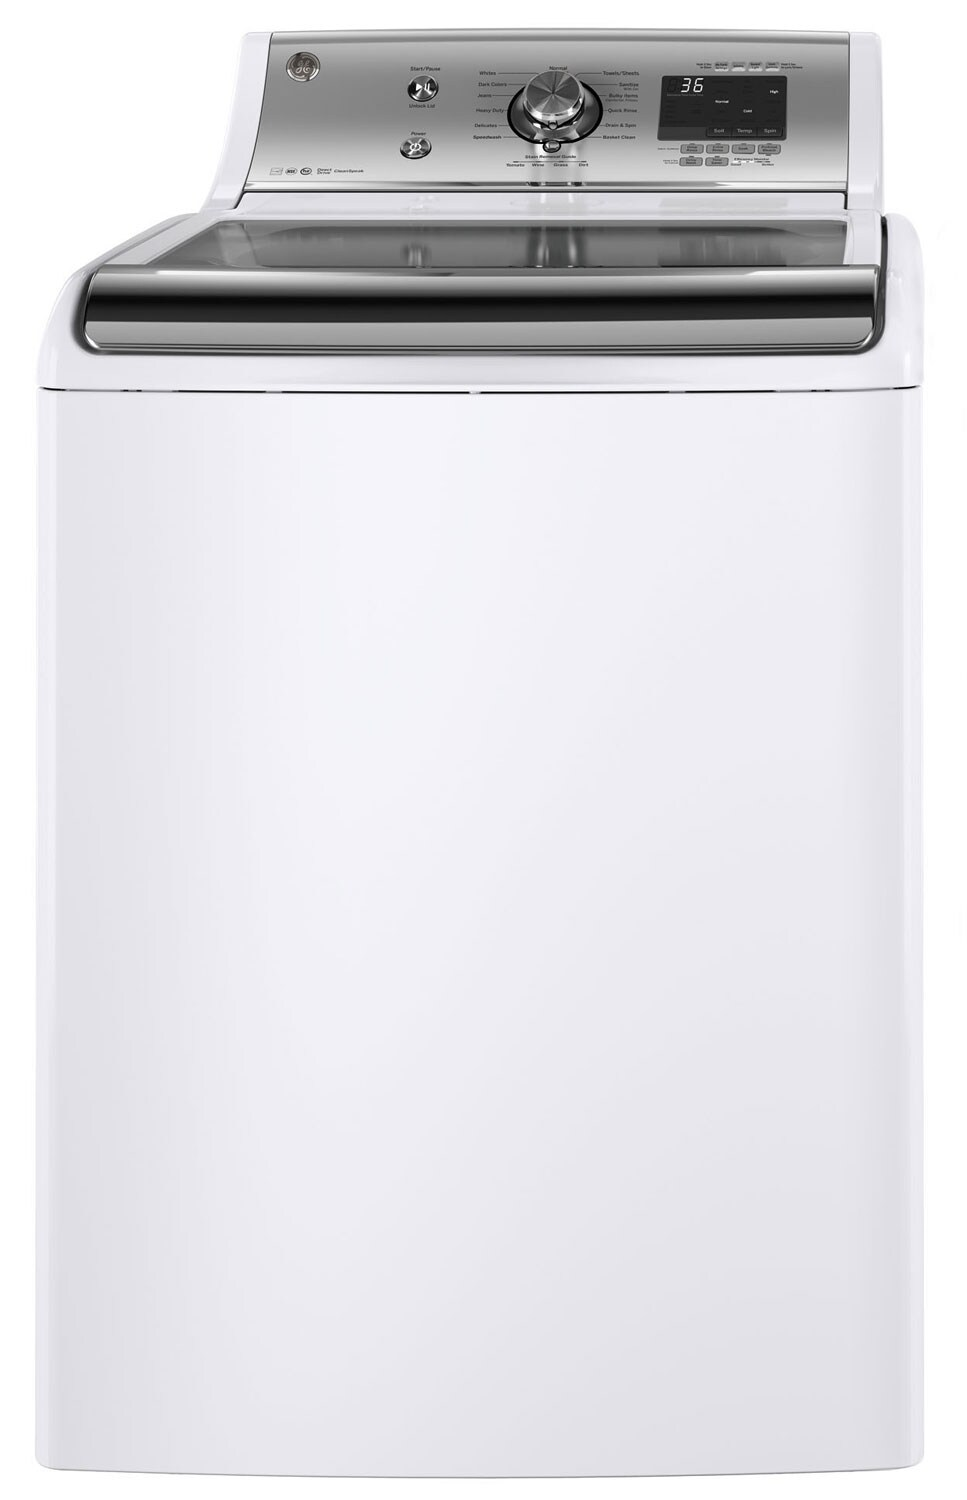 Washers and Dryers - GE 5.9 Cu. Ft. Top-Load Washer – GTW810SSJWS